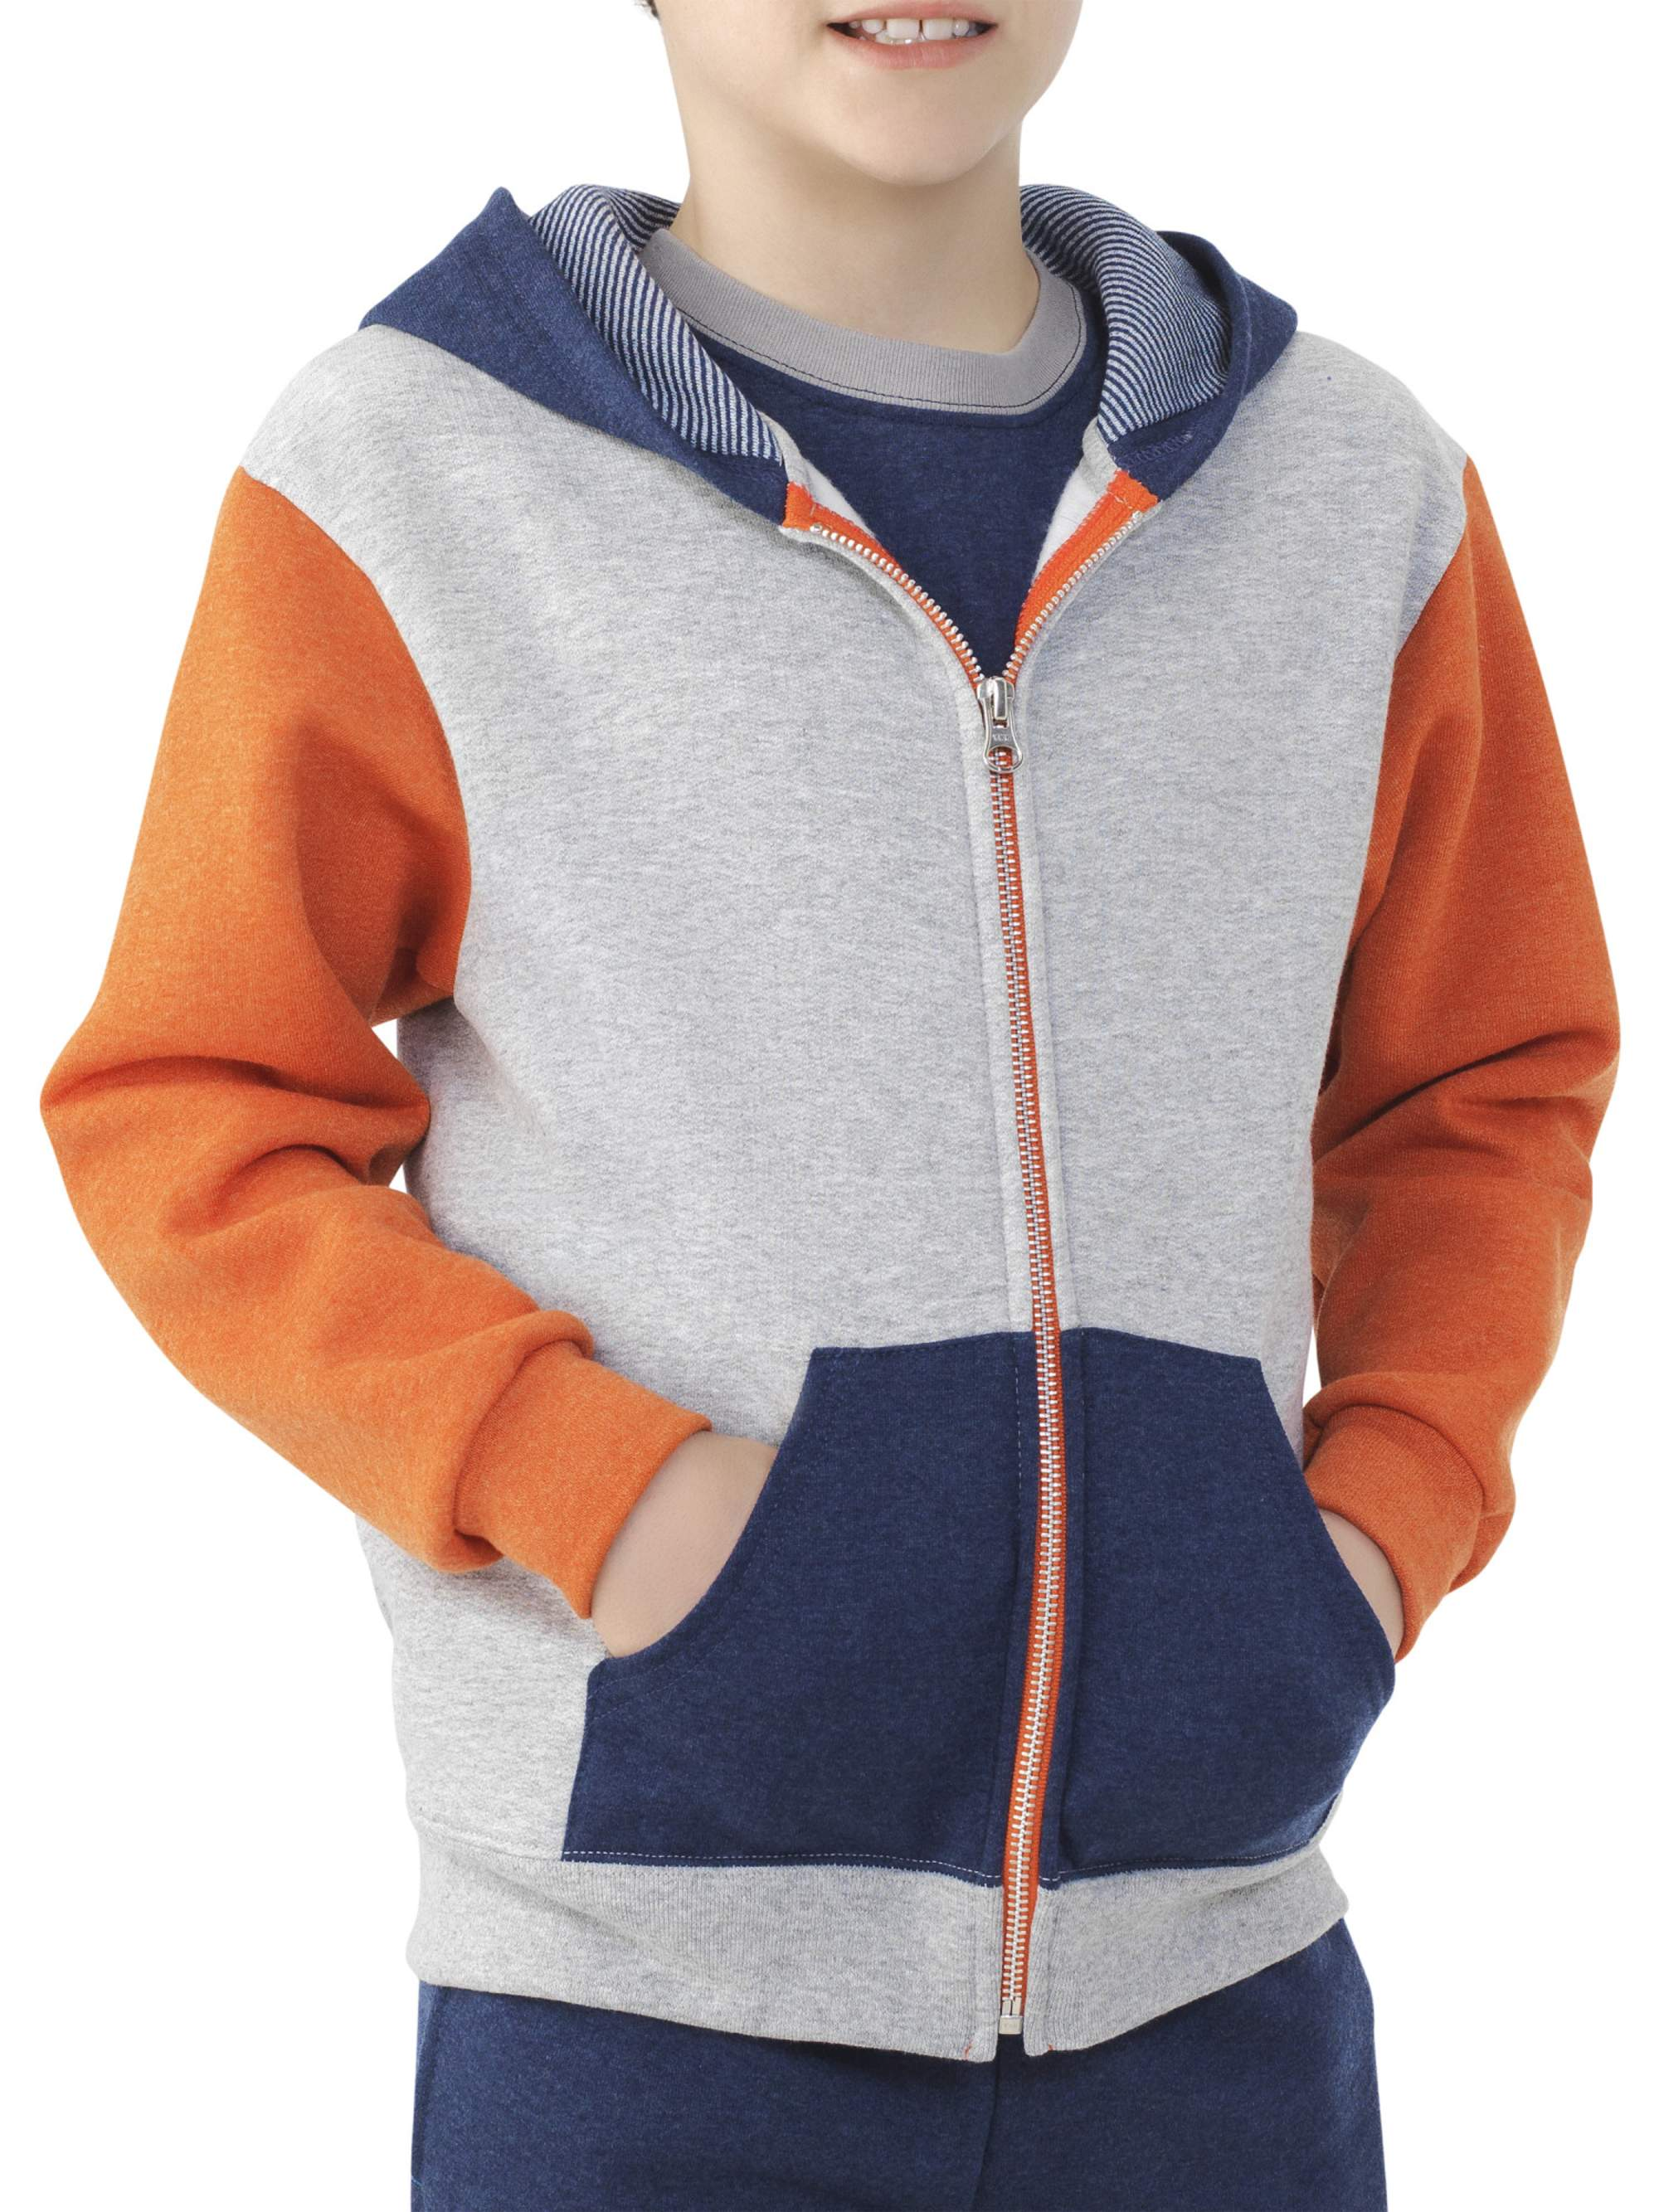 Boys' Explorer Fleece Super Soft Zip Hoodie with Contrast Sleeves